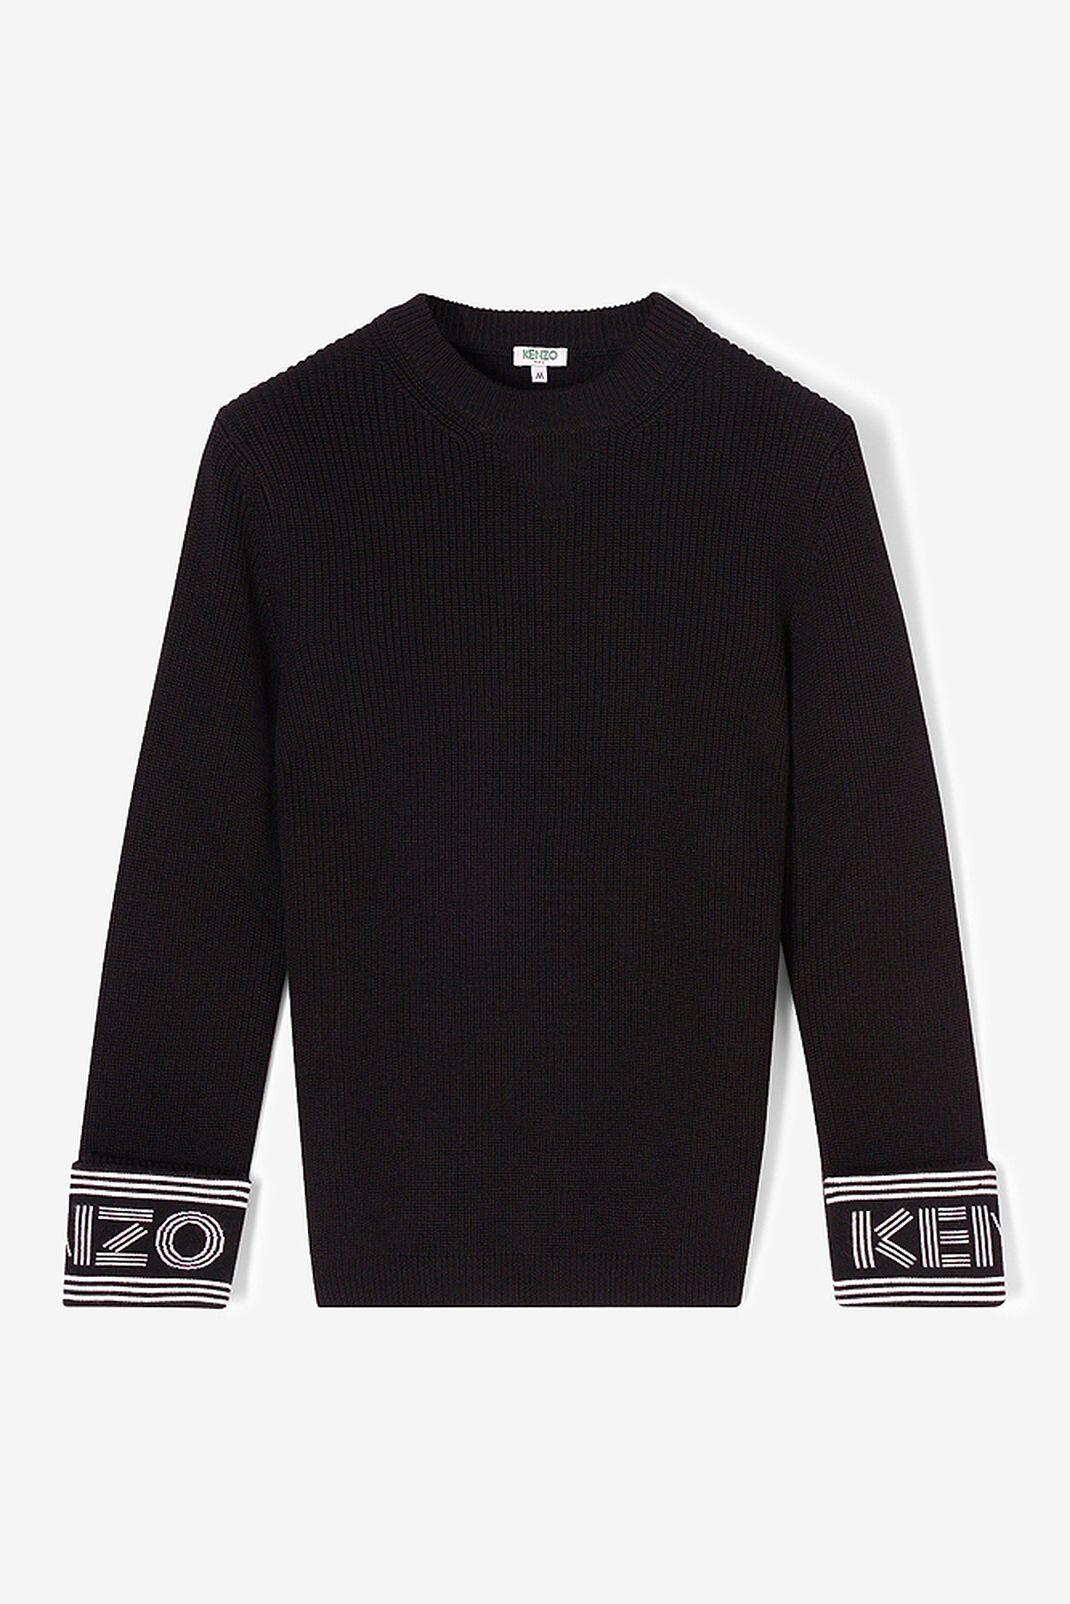 BLACK KENZO Ribbed Sweater for men